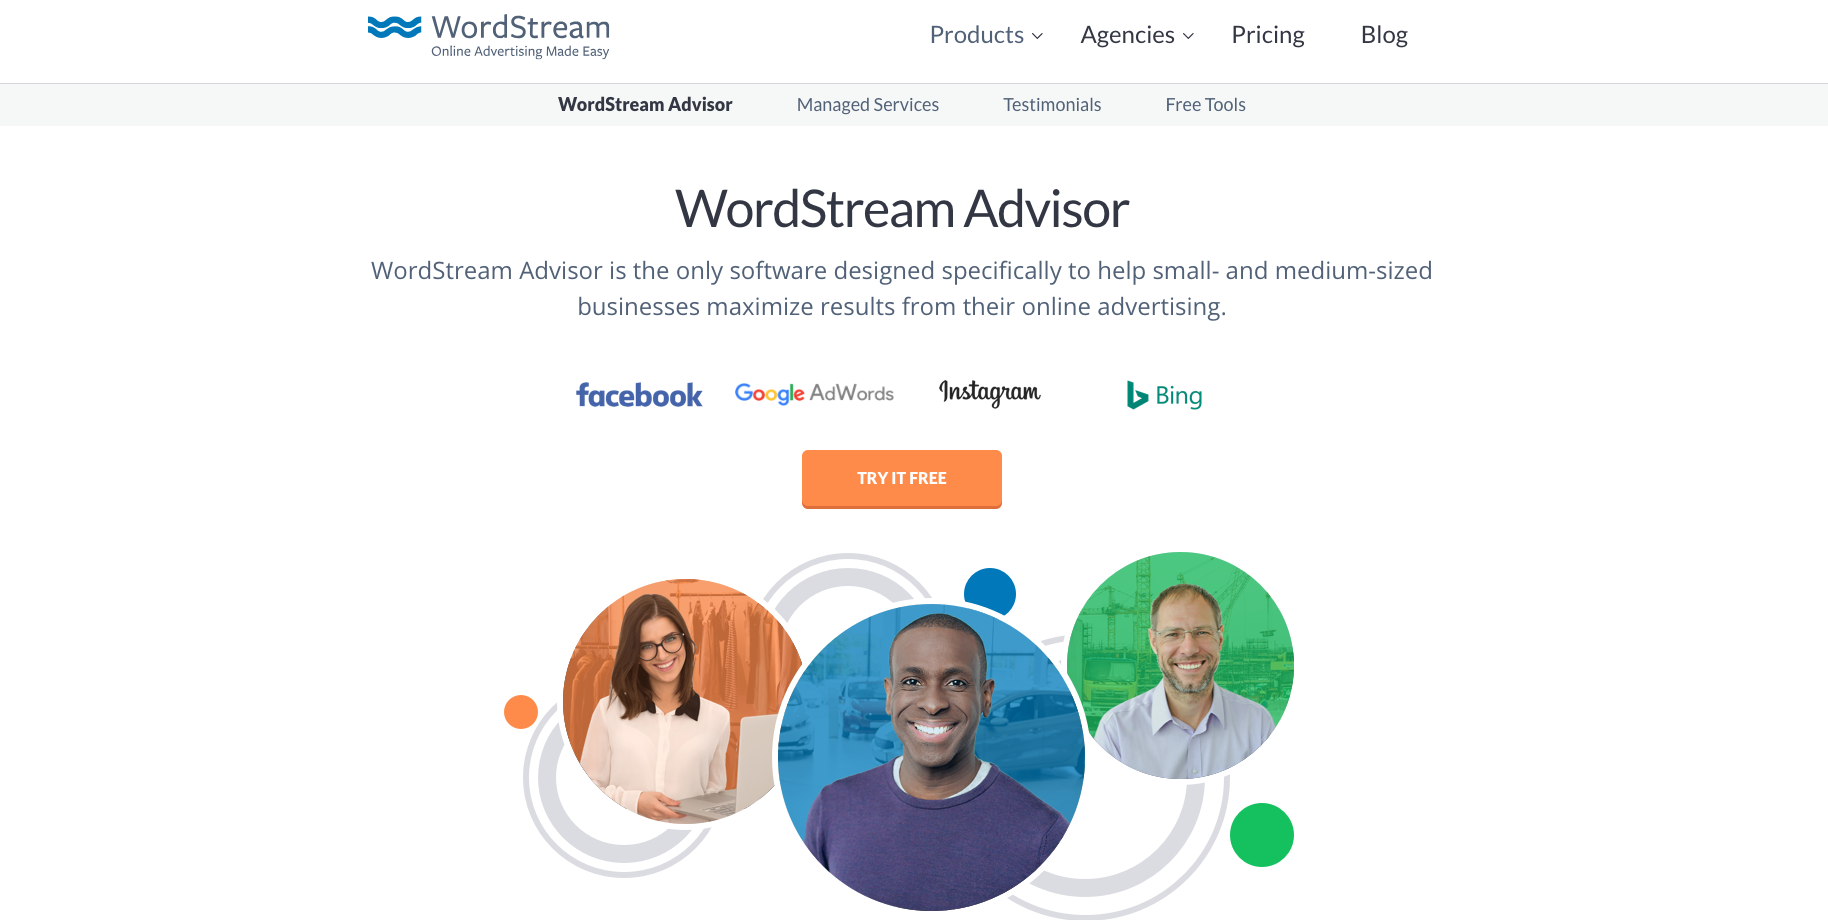 Image showing WordPressn advisor homepage, a very useful e-commerce marketing tool for managing your paid advertising accounts.